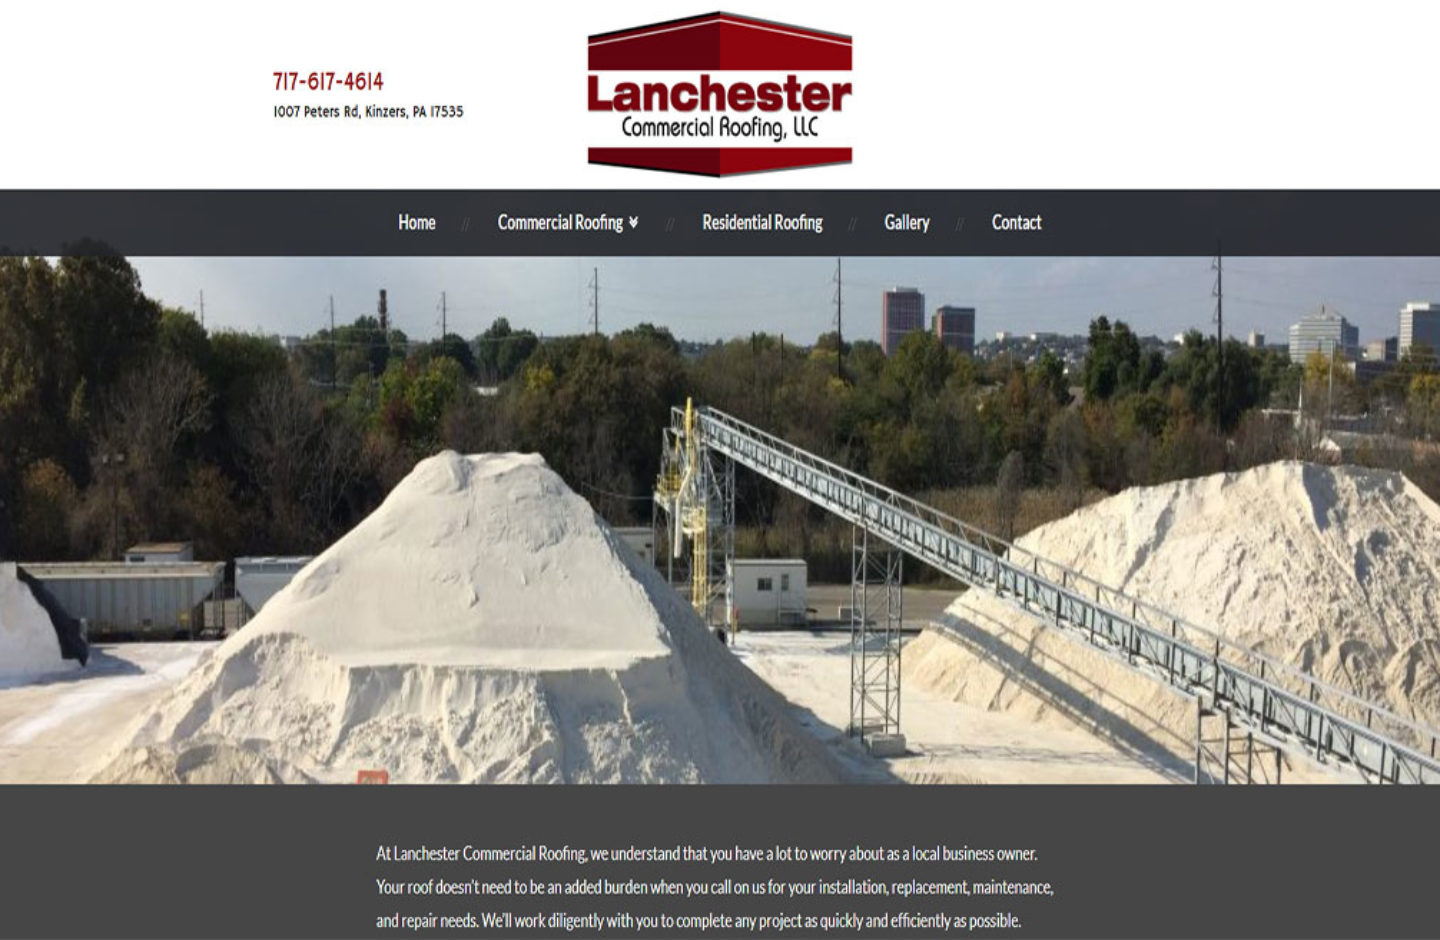 Lanchester Commercial Roofing